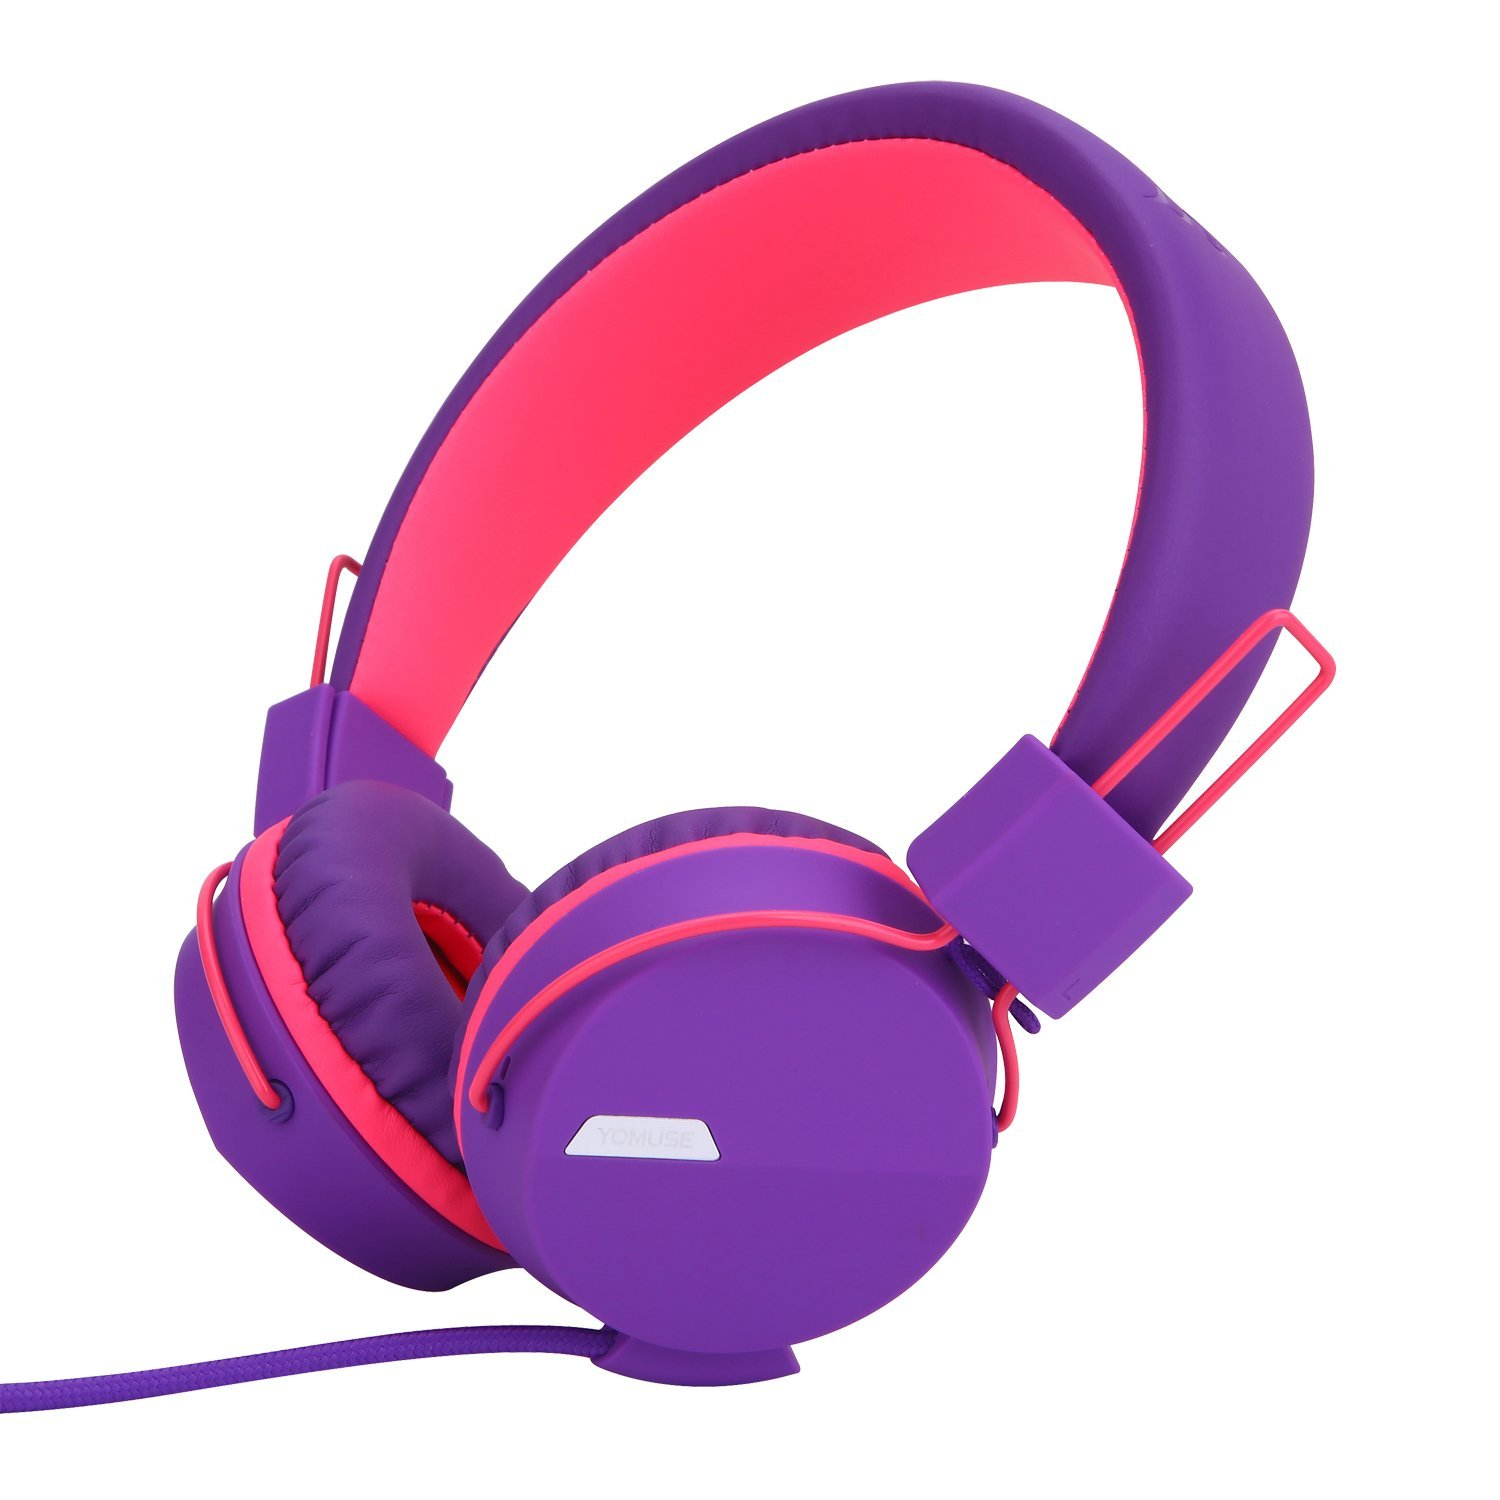 Yomuse F85 On Ear Foldable Headphones with Microphone for Kids Teens Adults, Smartphones iPhone iPod iPad Laptop Tablets Mp3 4 Purple Pink